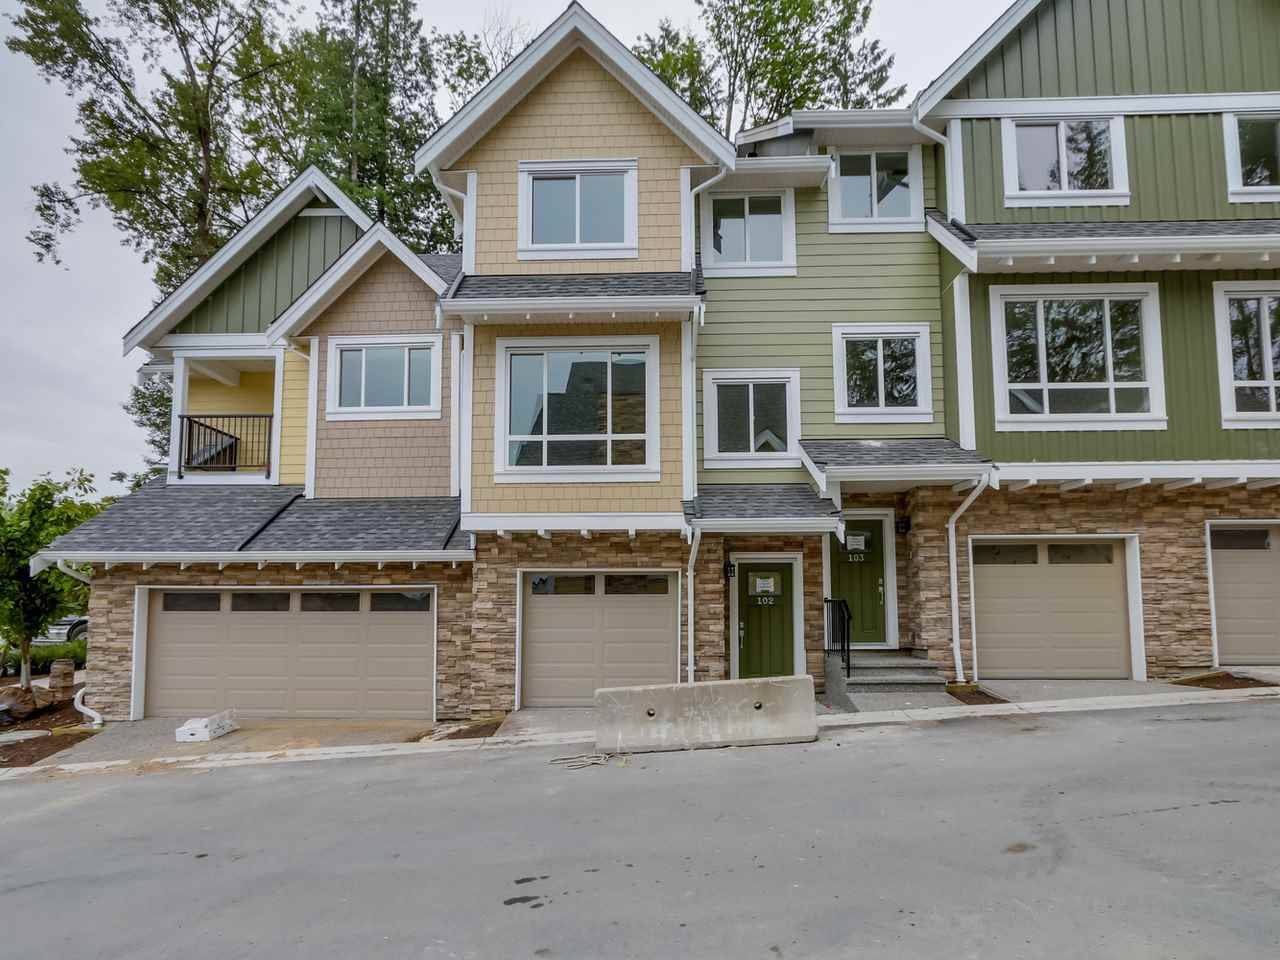 Main Photo: 103 1405 DAYTON Street in : Burke Mountain Townhouse for sale (Coquitlam)  : MLS®# R2123284